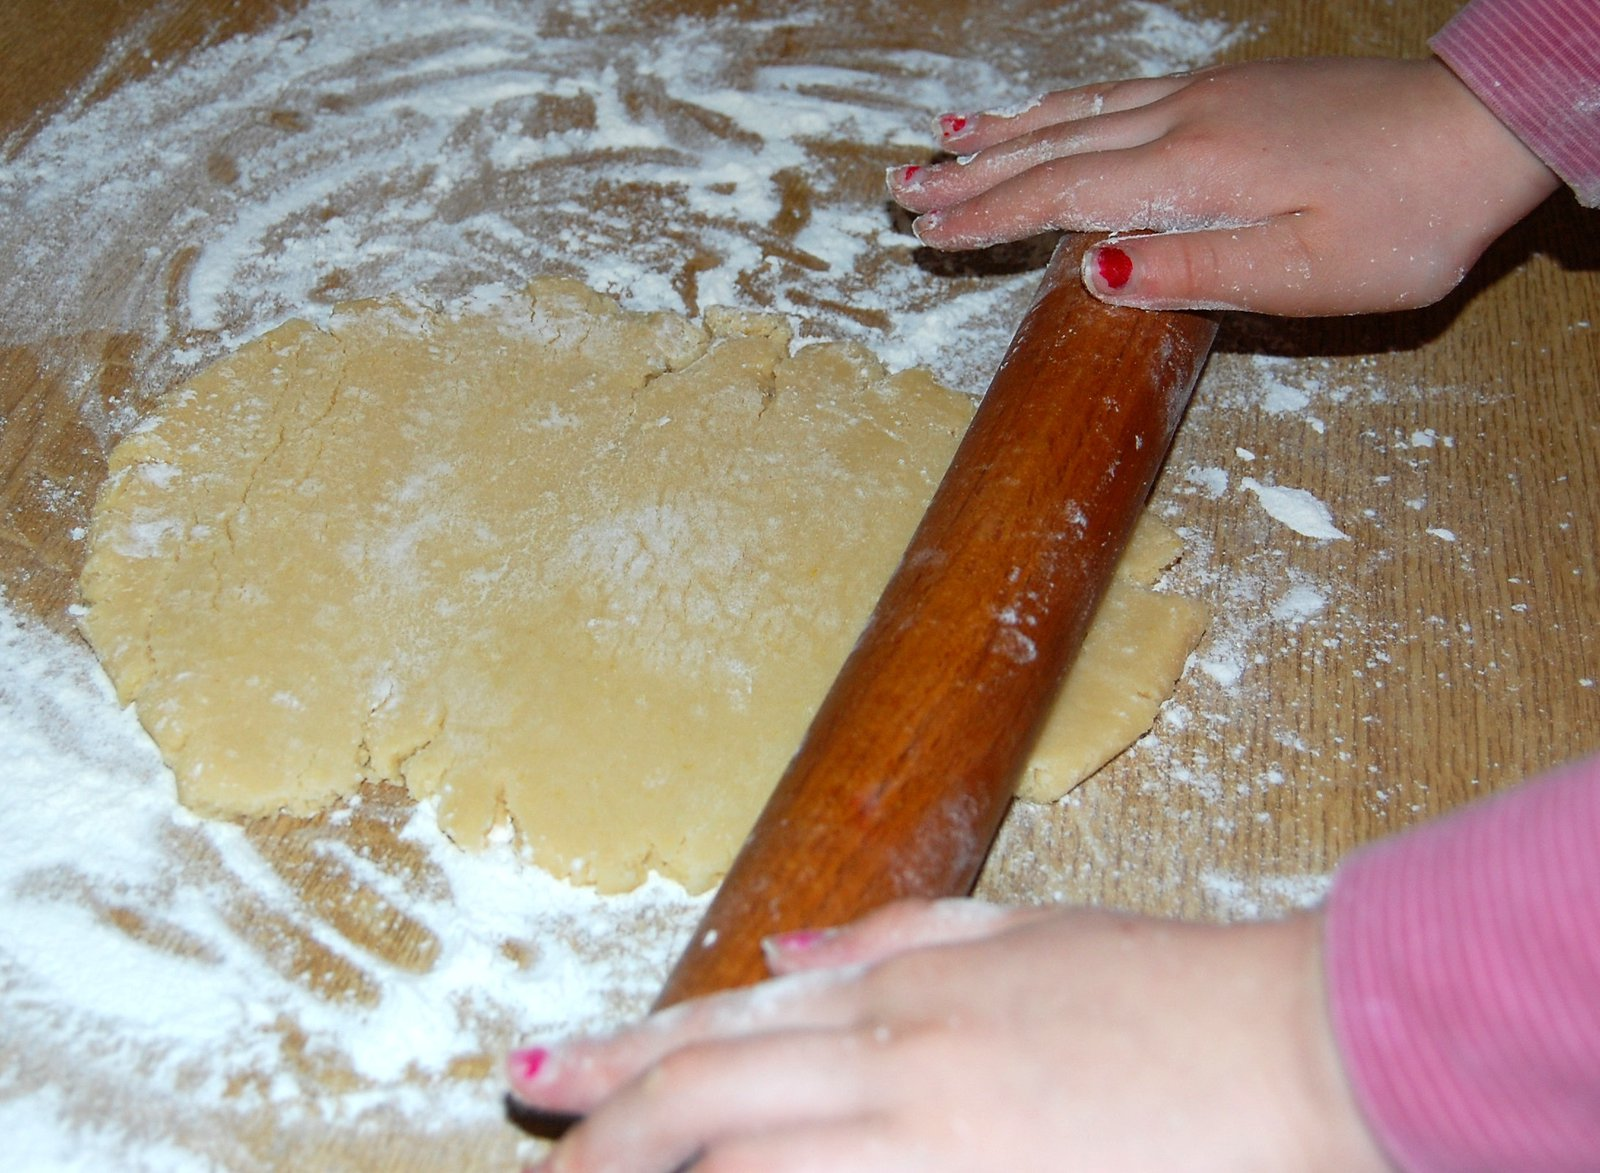 Rolling out the biscuit pastry